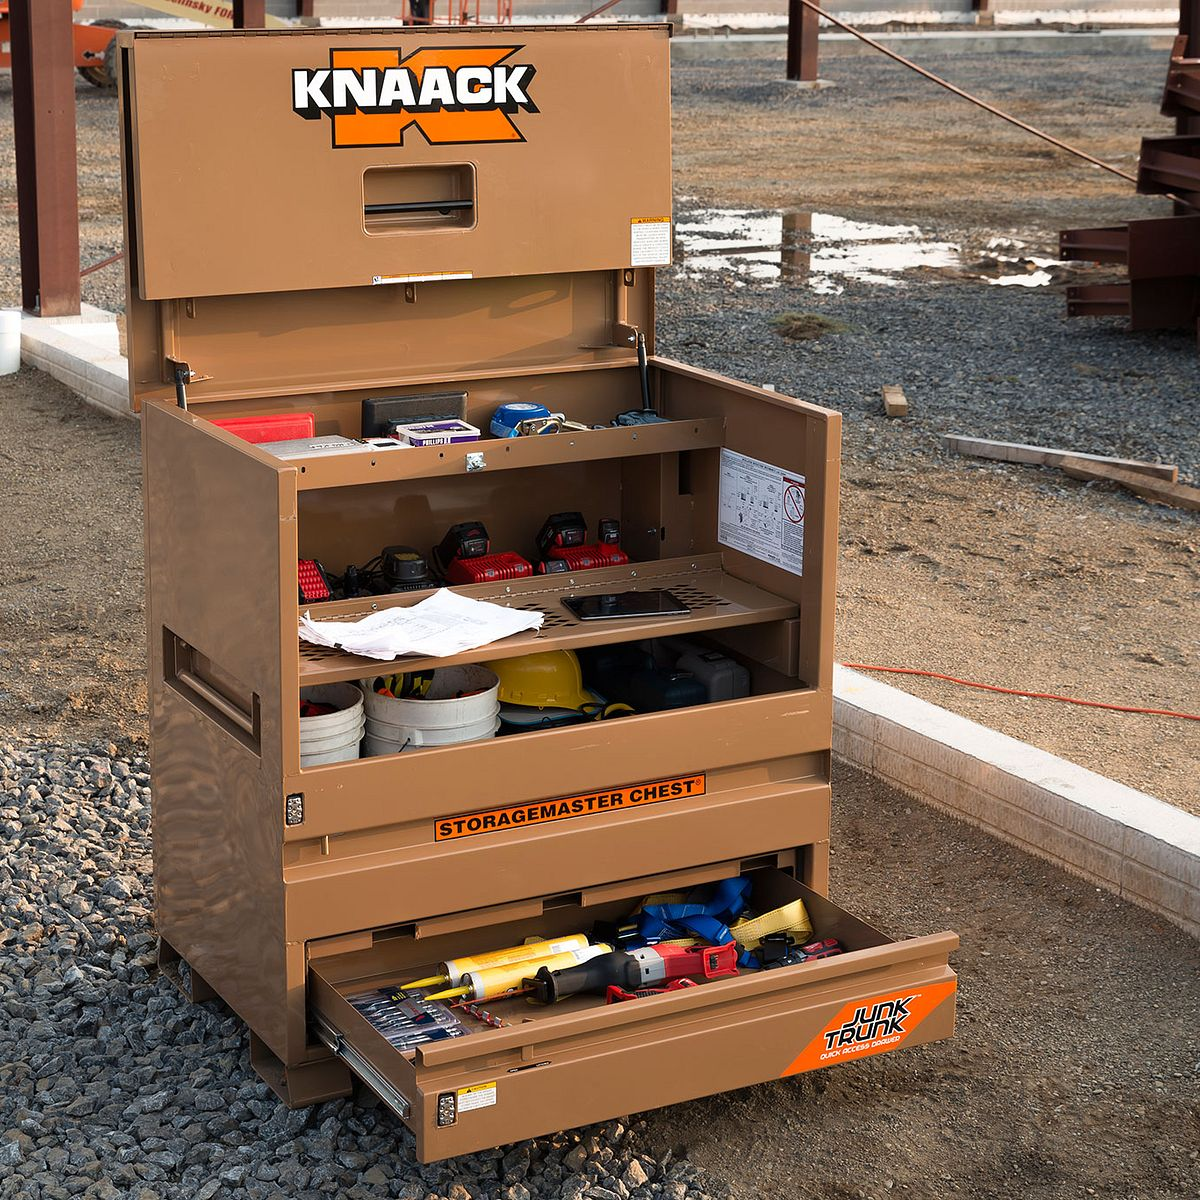 medium resolution of truck knack box